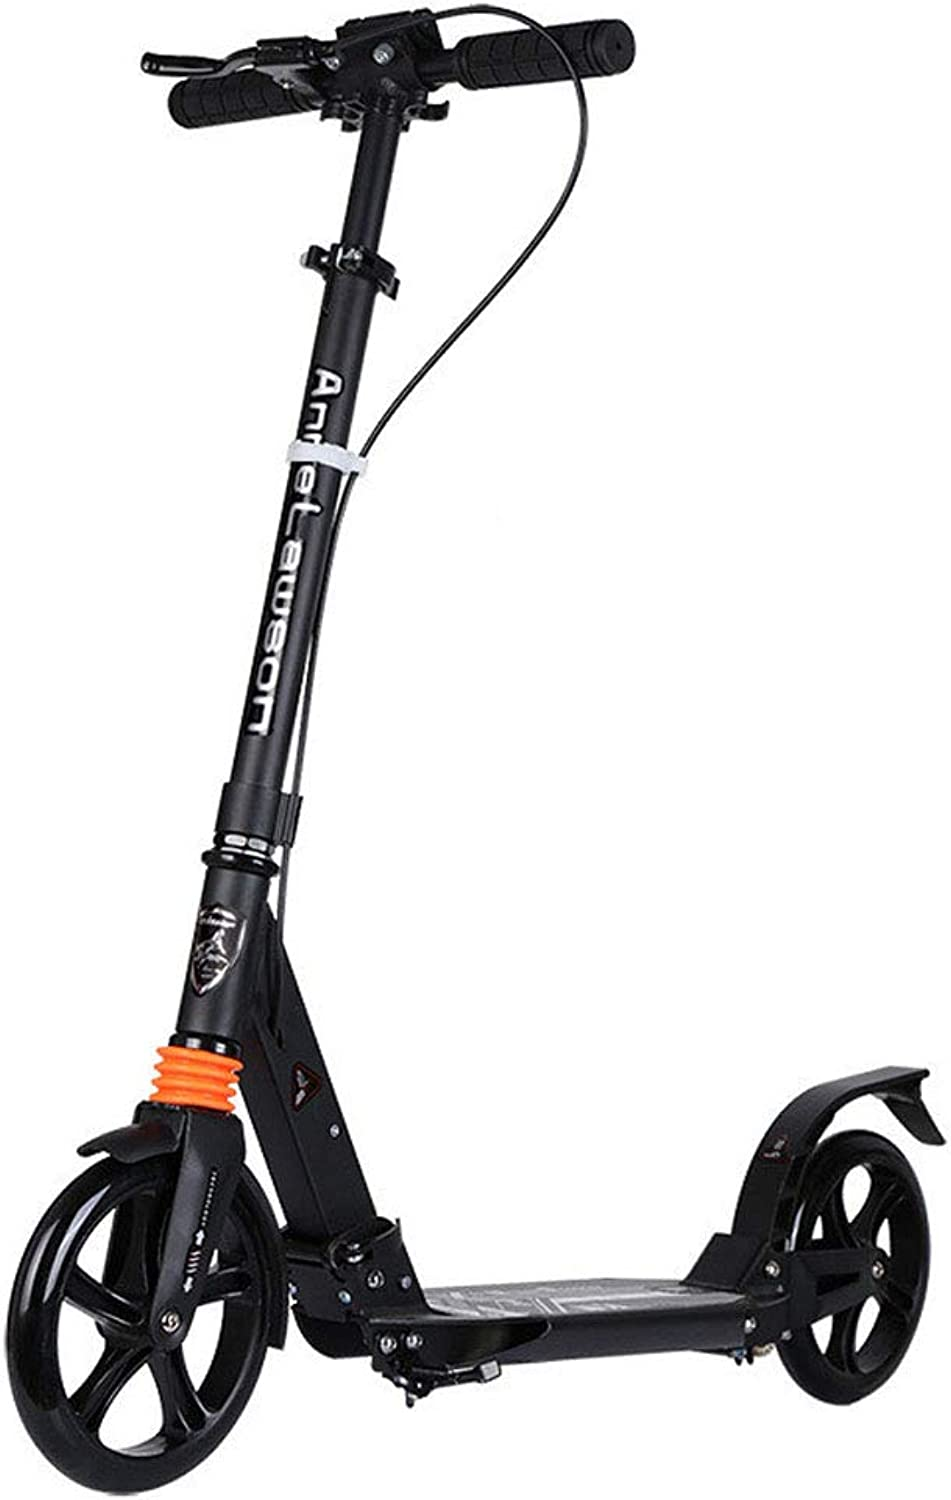 Foldable Kick Scooter for Adults Teens, Oversized Wheels 200mm Scooter with Hand Brake Commuter Scooters for Kids, City Scooters Support 100kg(220lbs), Black